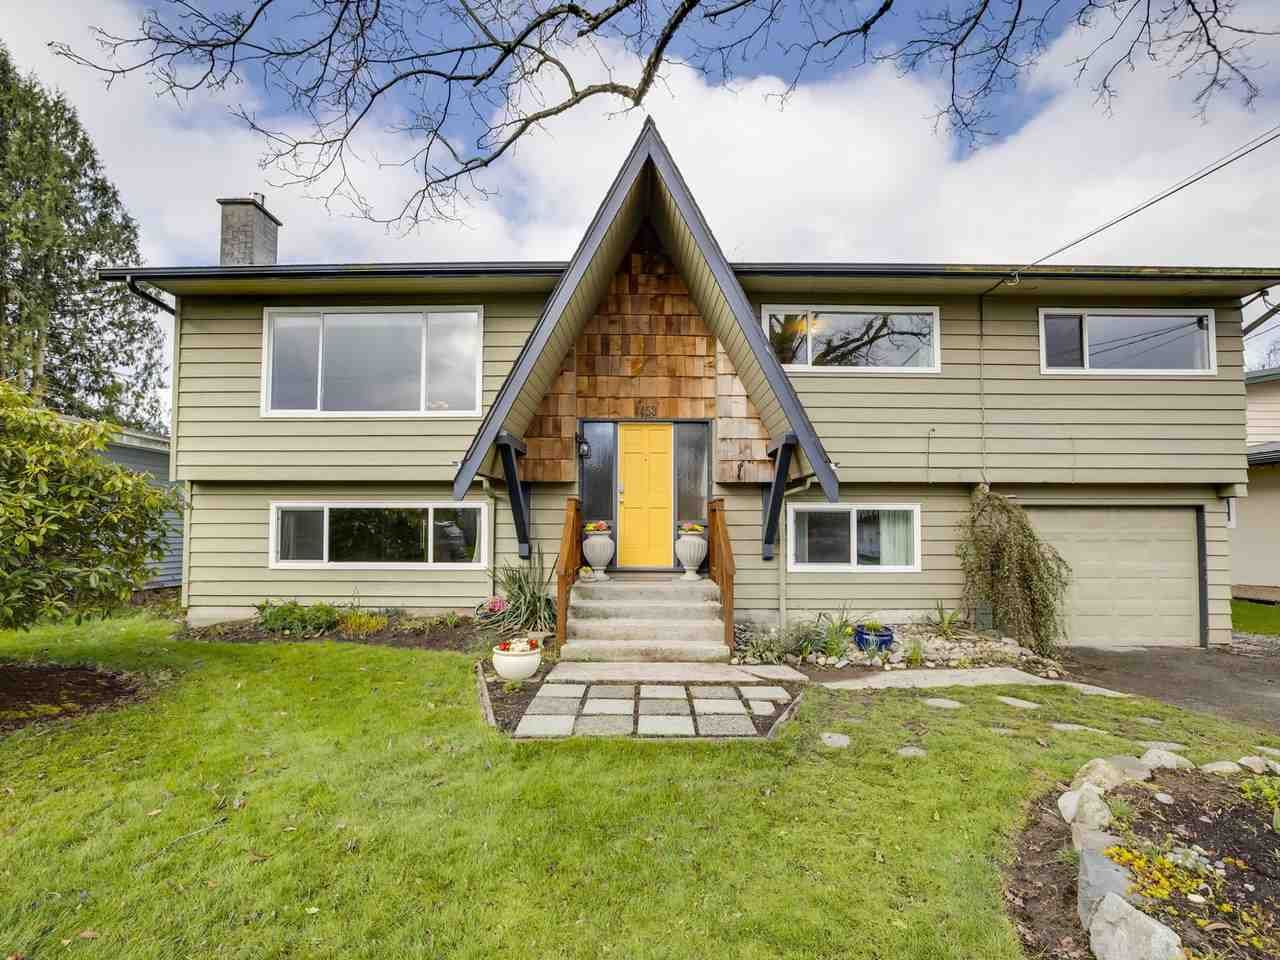 Main Photo: 4453 54A Street in Delta: Delta Manor House for sale (Ladner)  : MLS®# R2557286